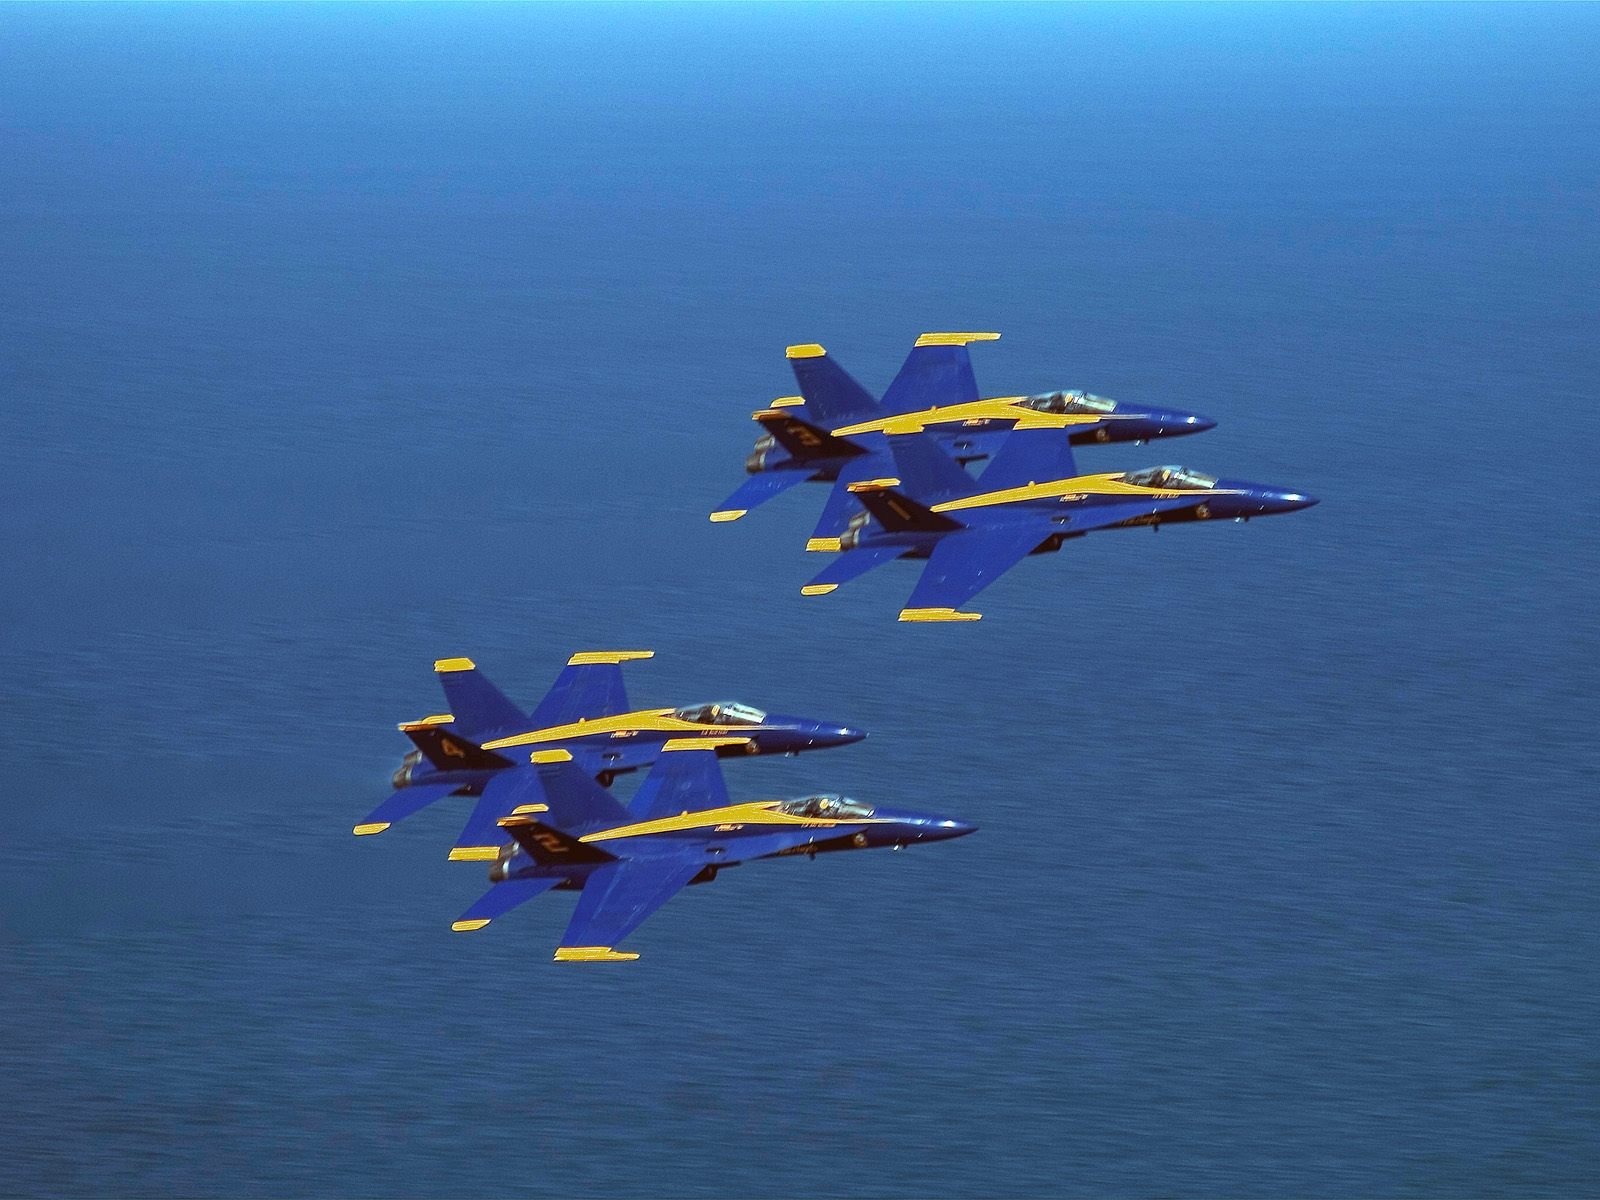 Blue Angels Wallpaper Desktop Blue angels in formation hd 1600x1200